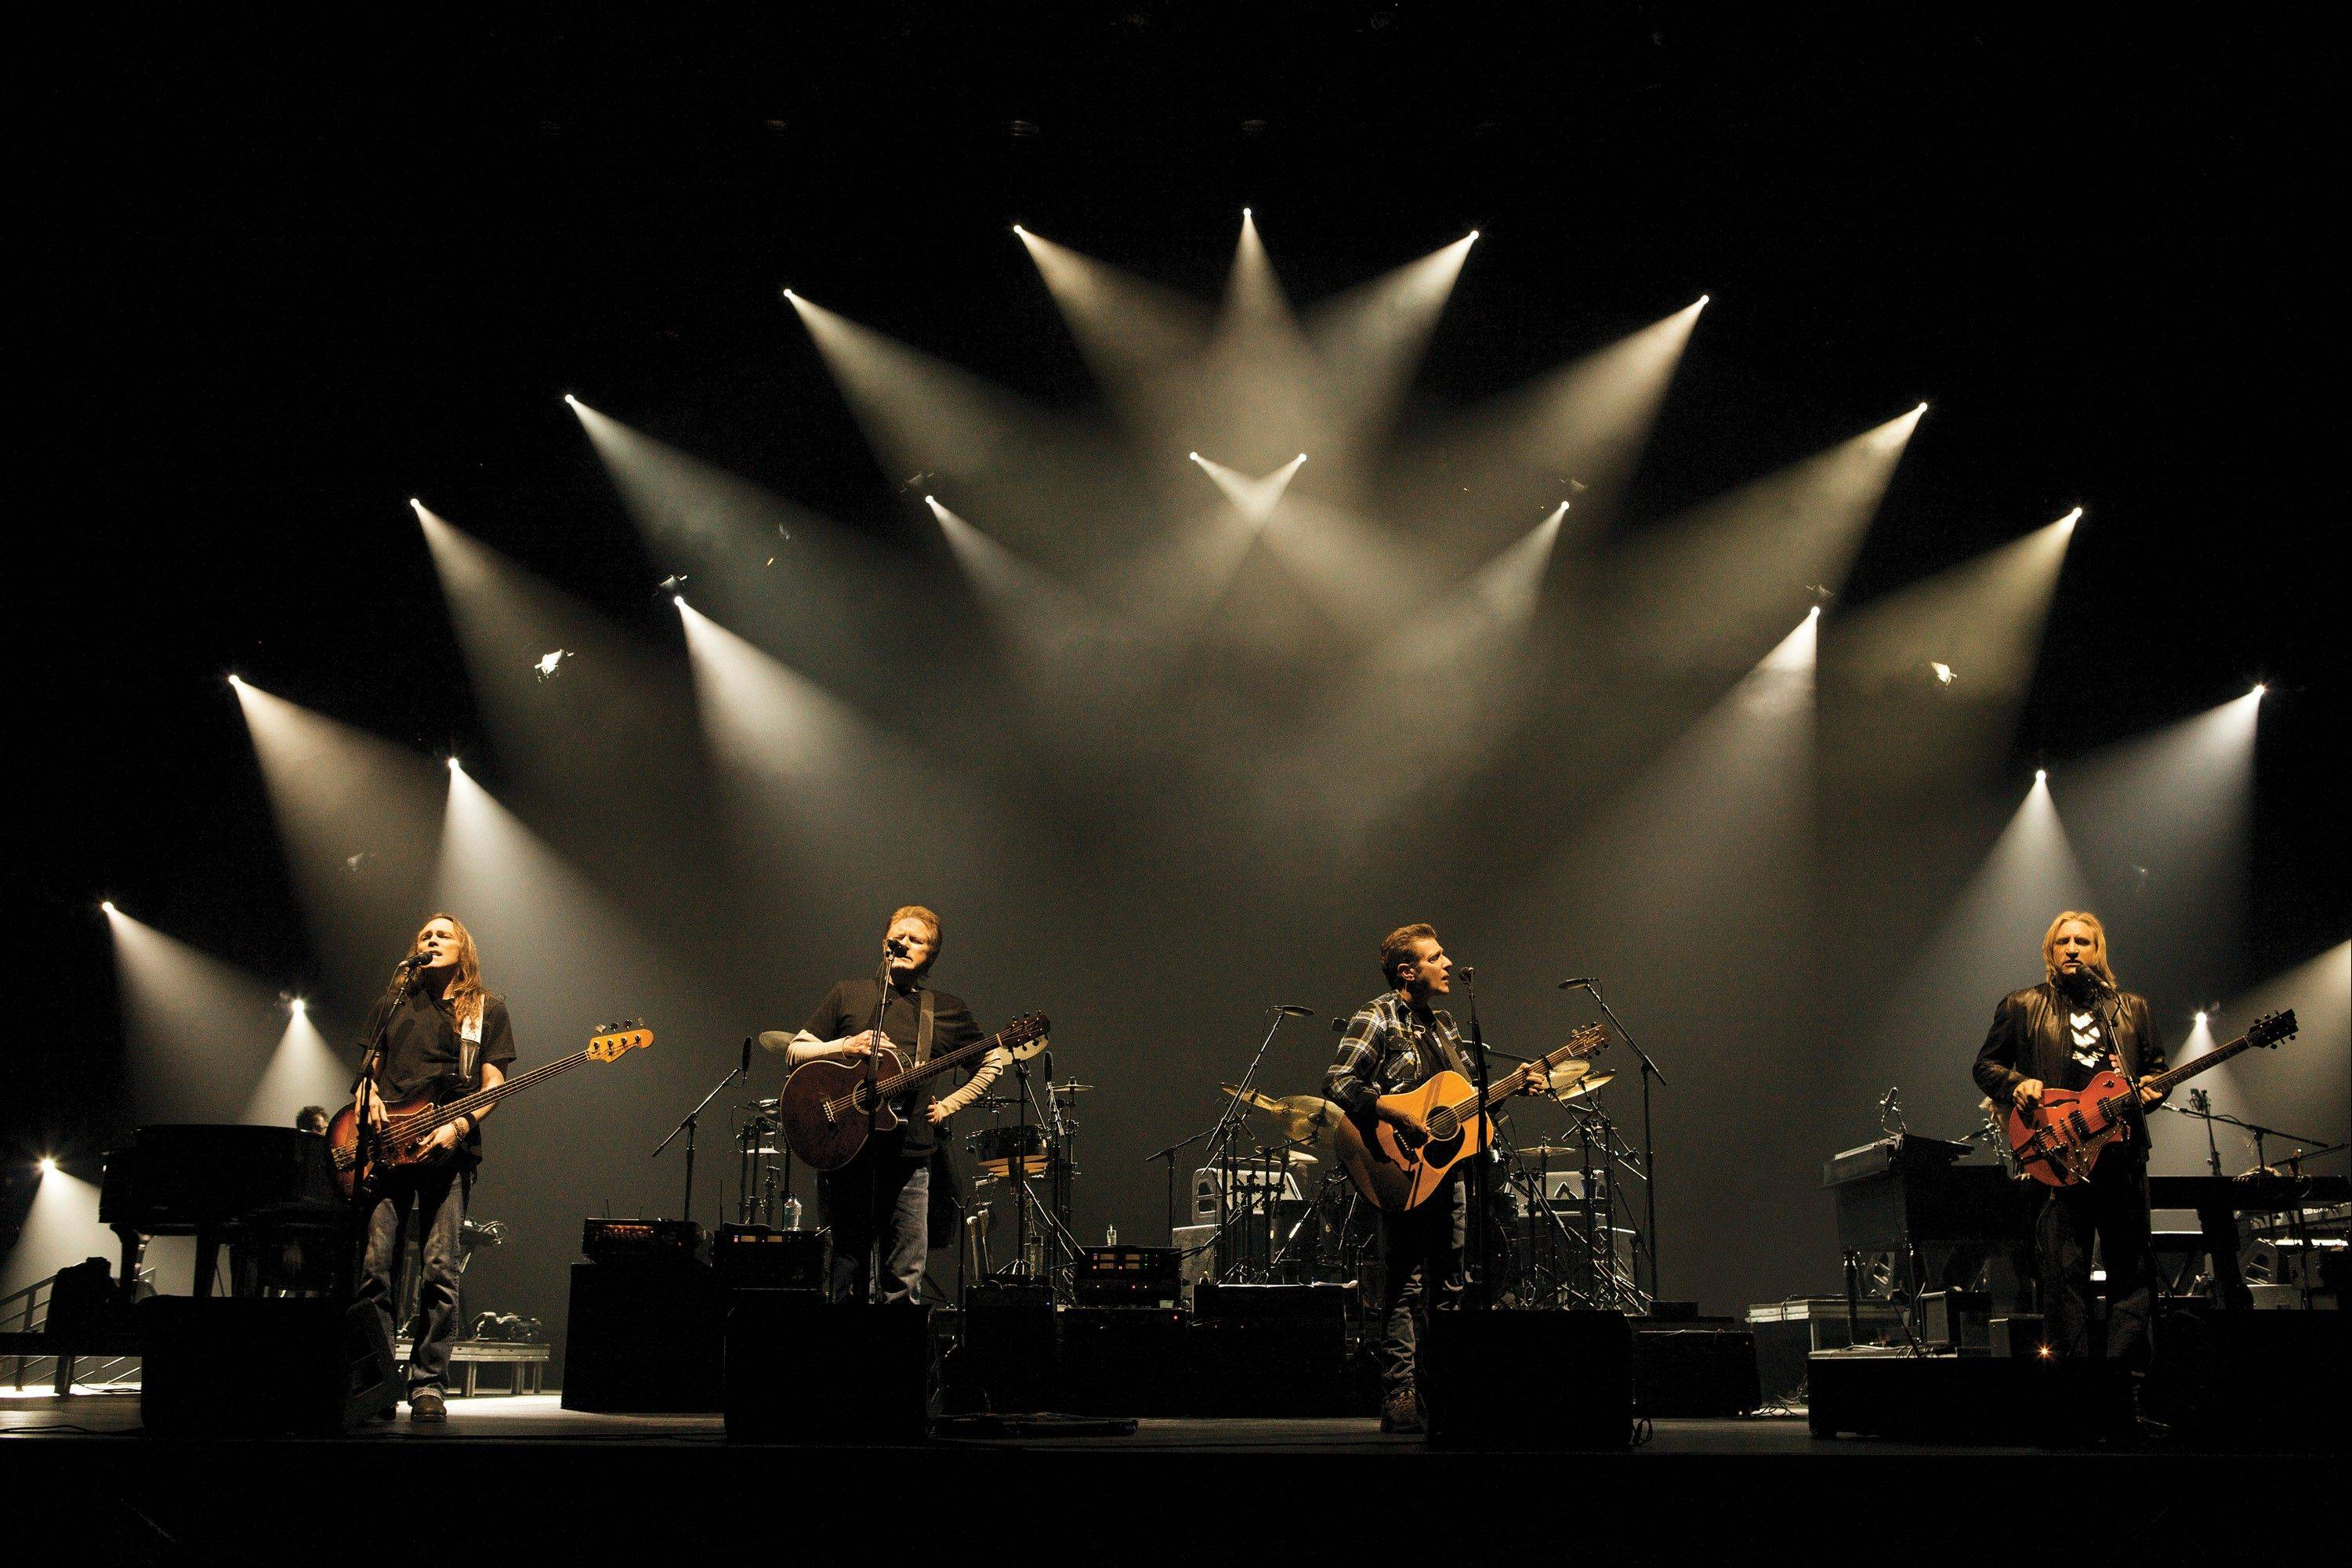 The Eagles perform at the Allstate Arena in Rosemont on Saturday, Oct. 19.